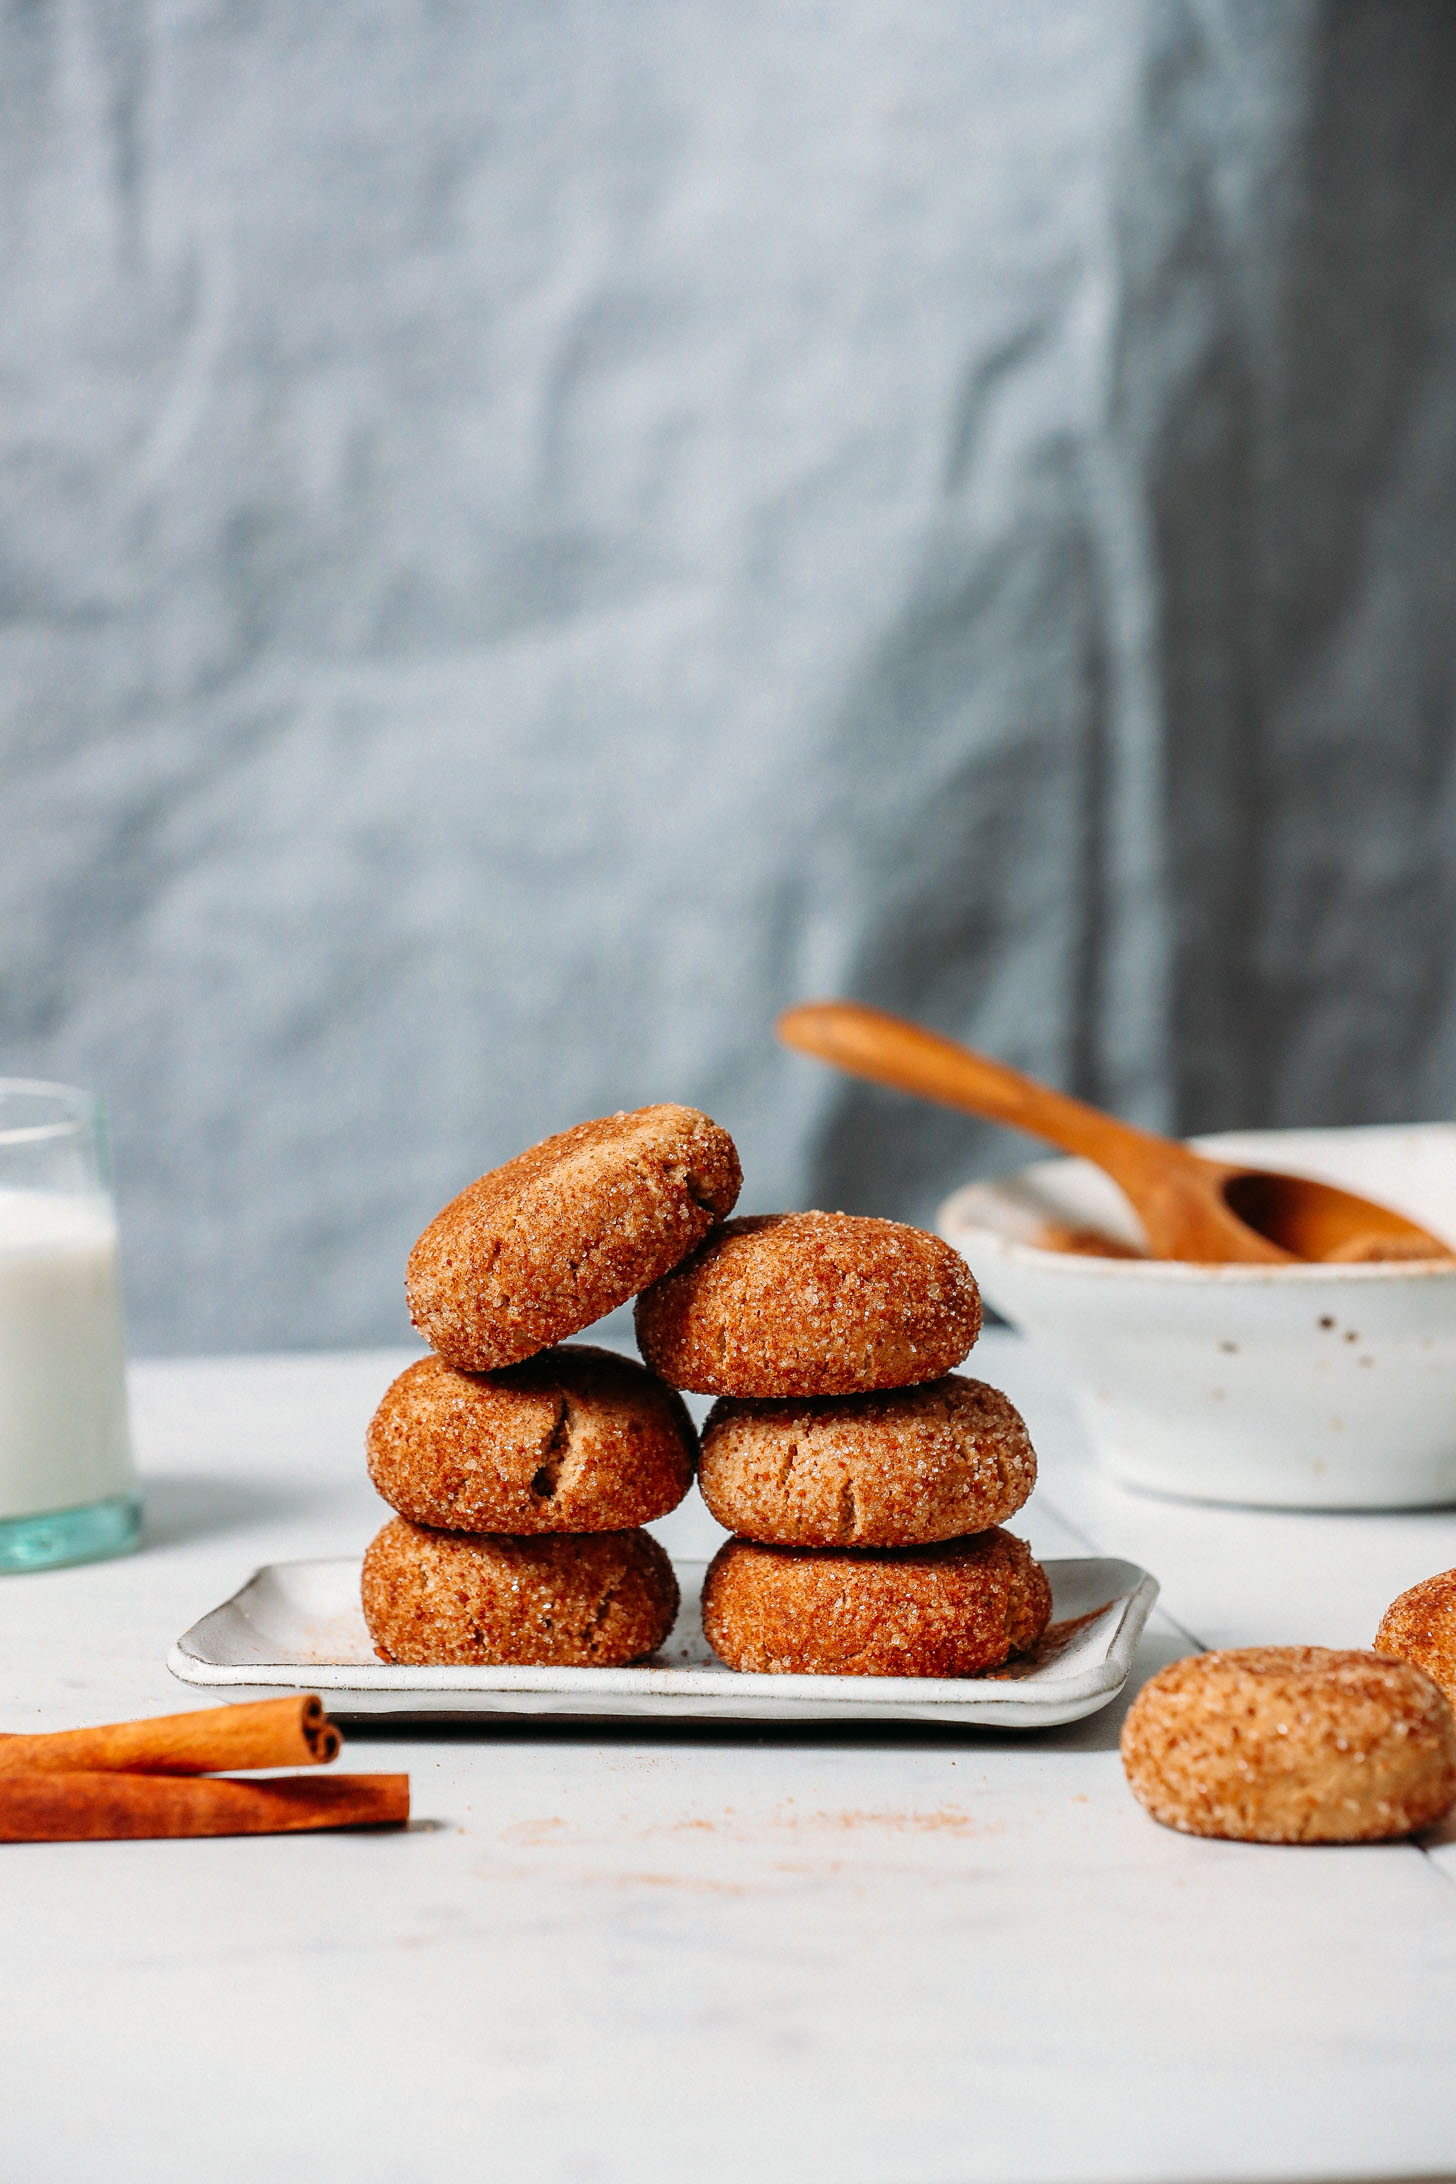 Small plate piled with Gluten-Free Vegan Snickerdoodle Cookies